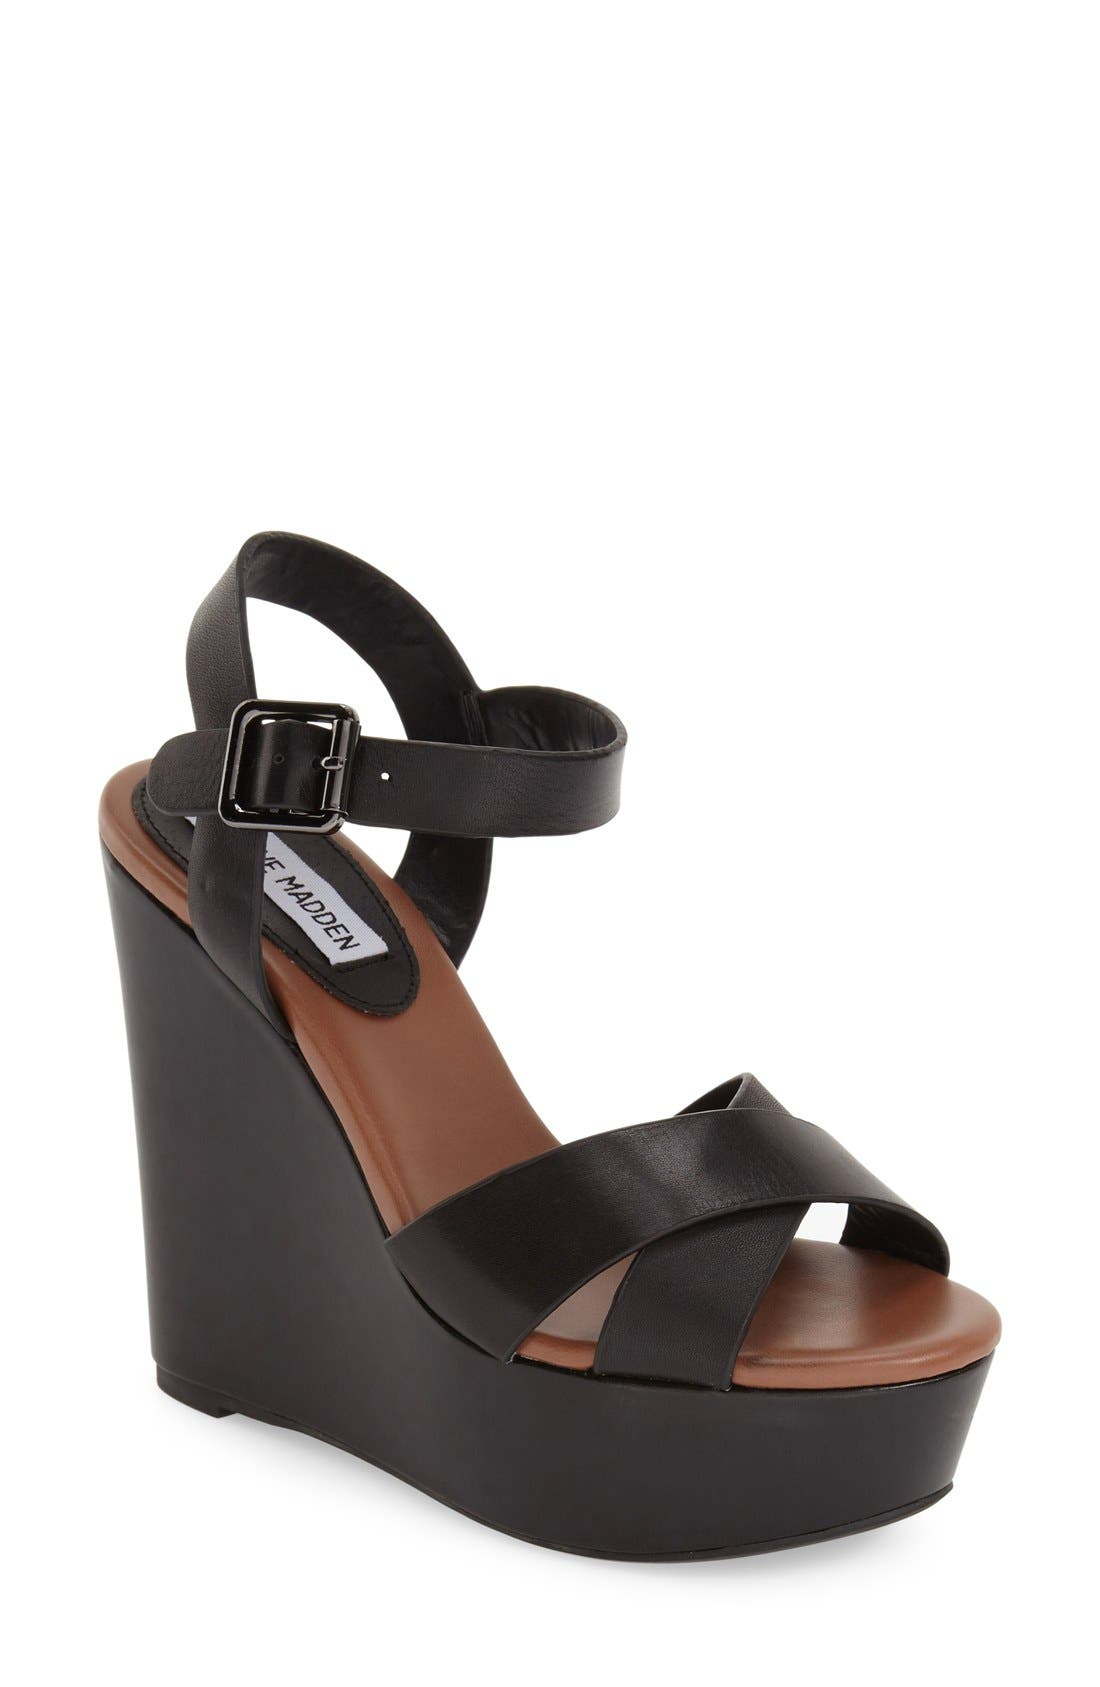 'Keviee' Wedge Sandal,                         Main,                         color, 001